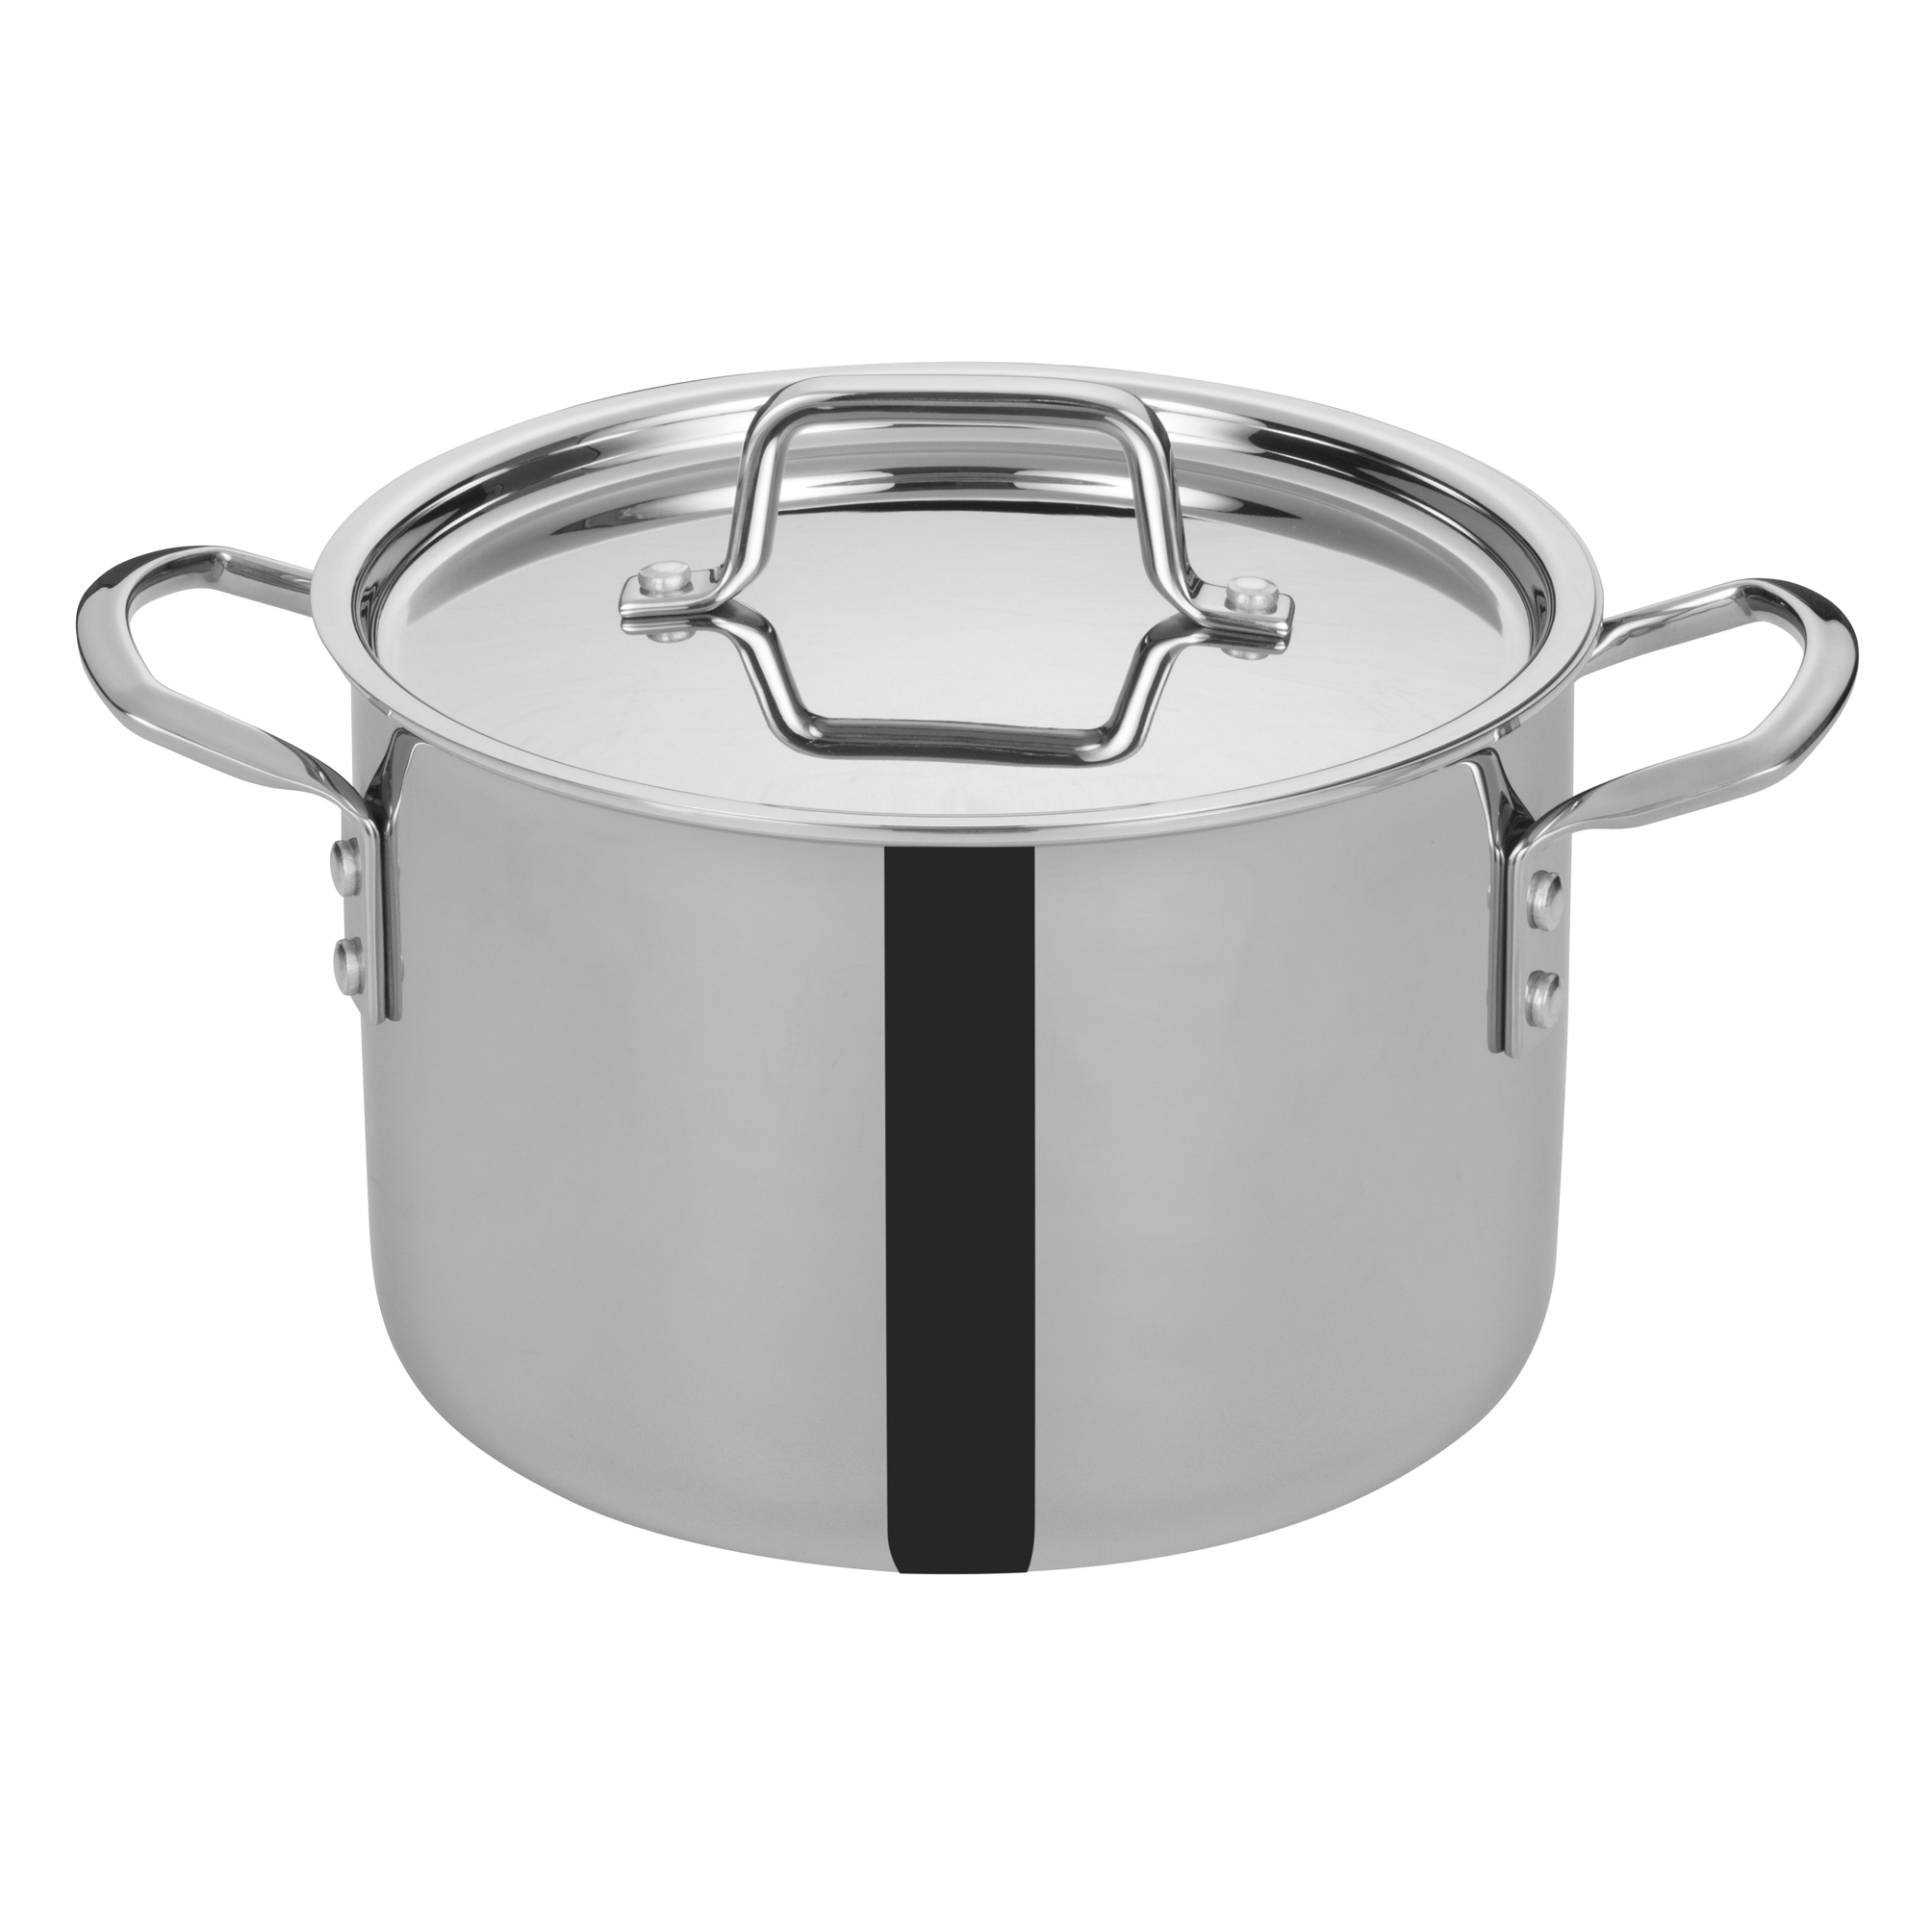 Winco TGSP-6 stock pot